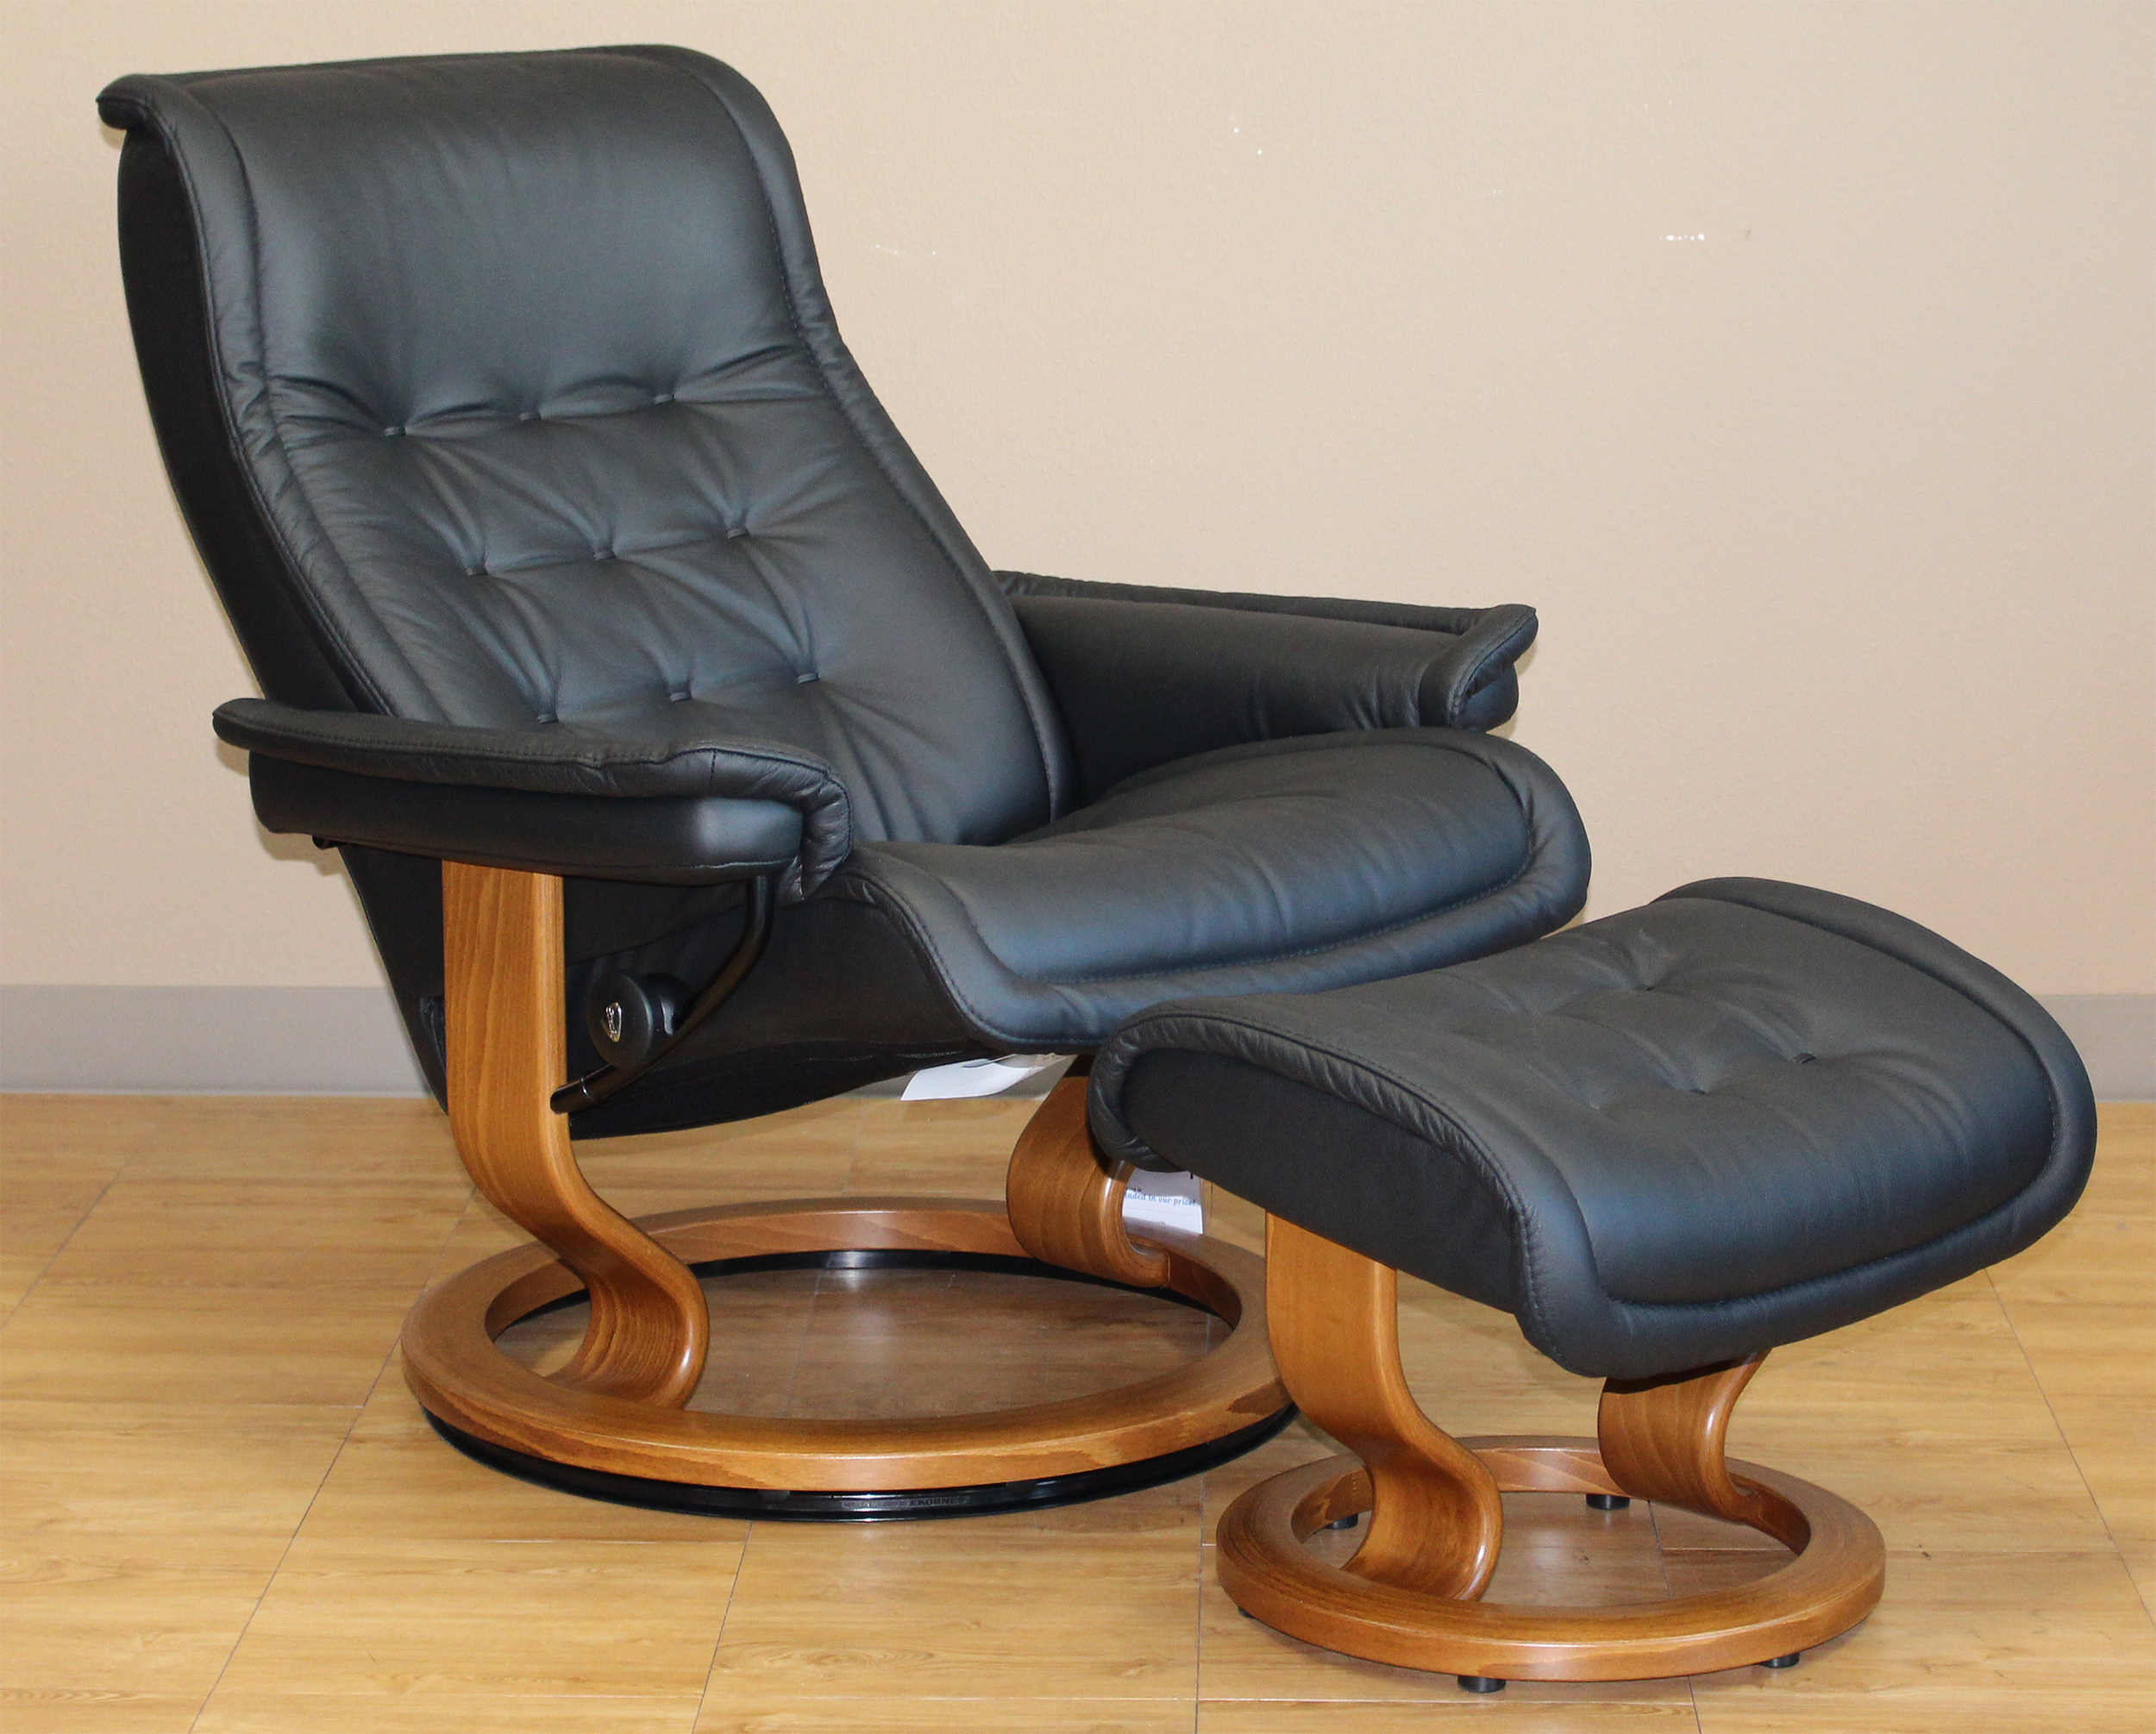 Ekornes Chairs Stressless Royal Recliner Chair Paloma Black Leather By